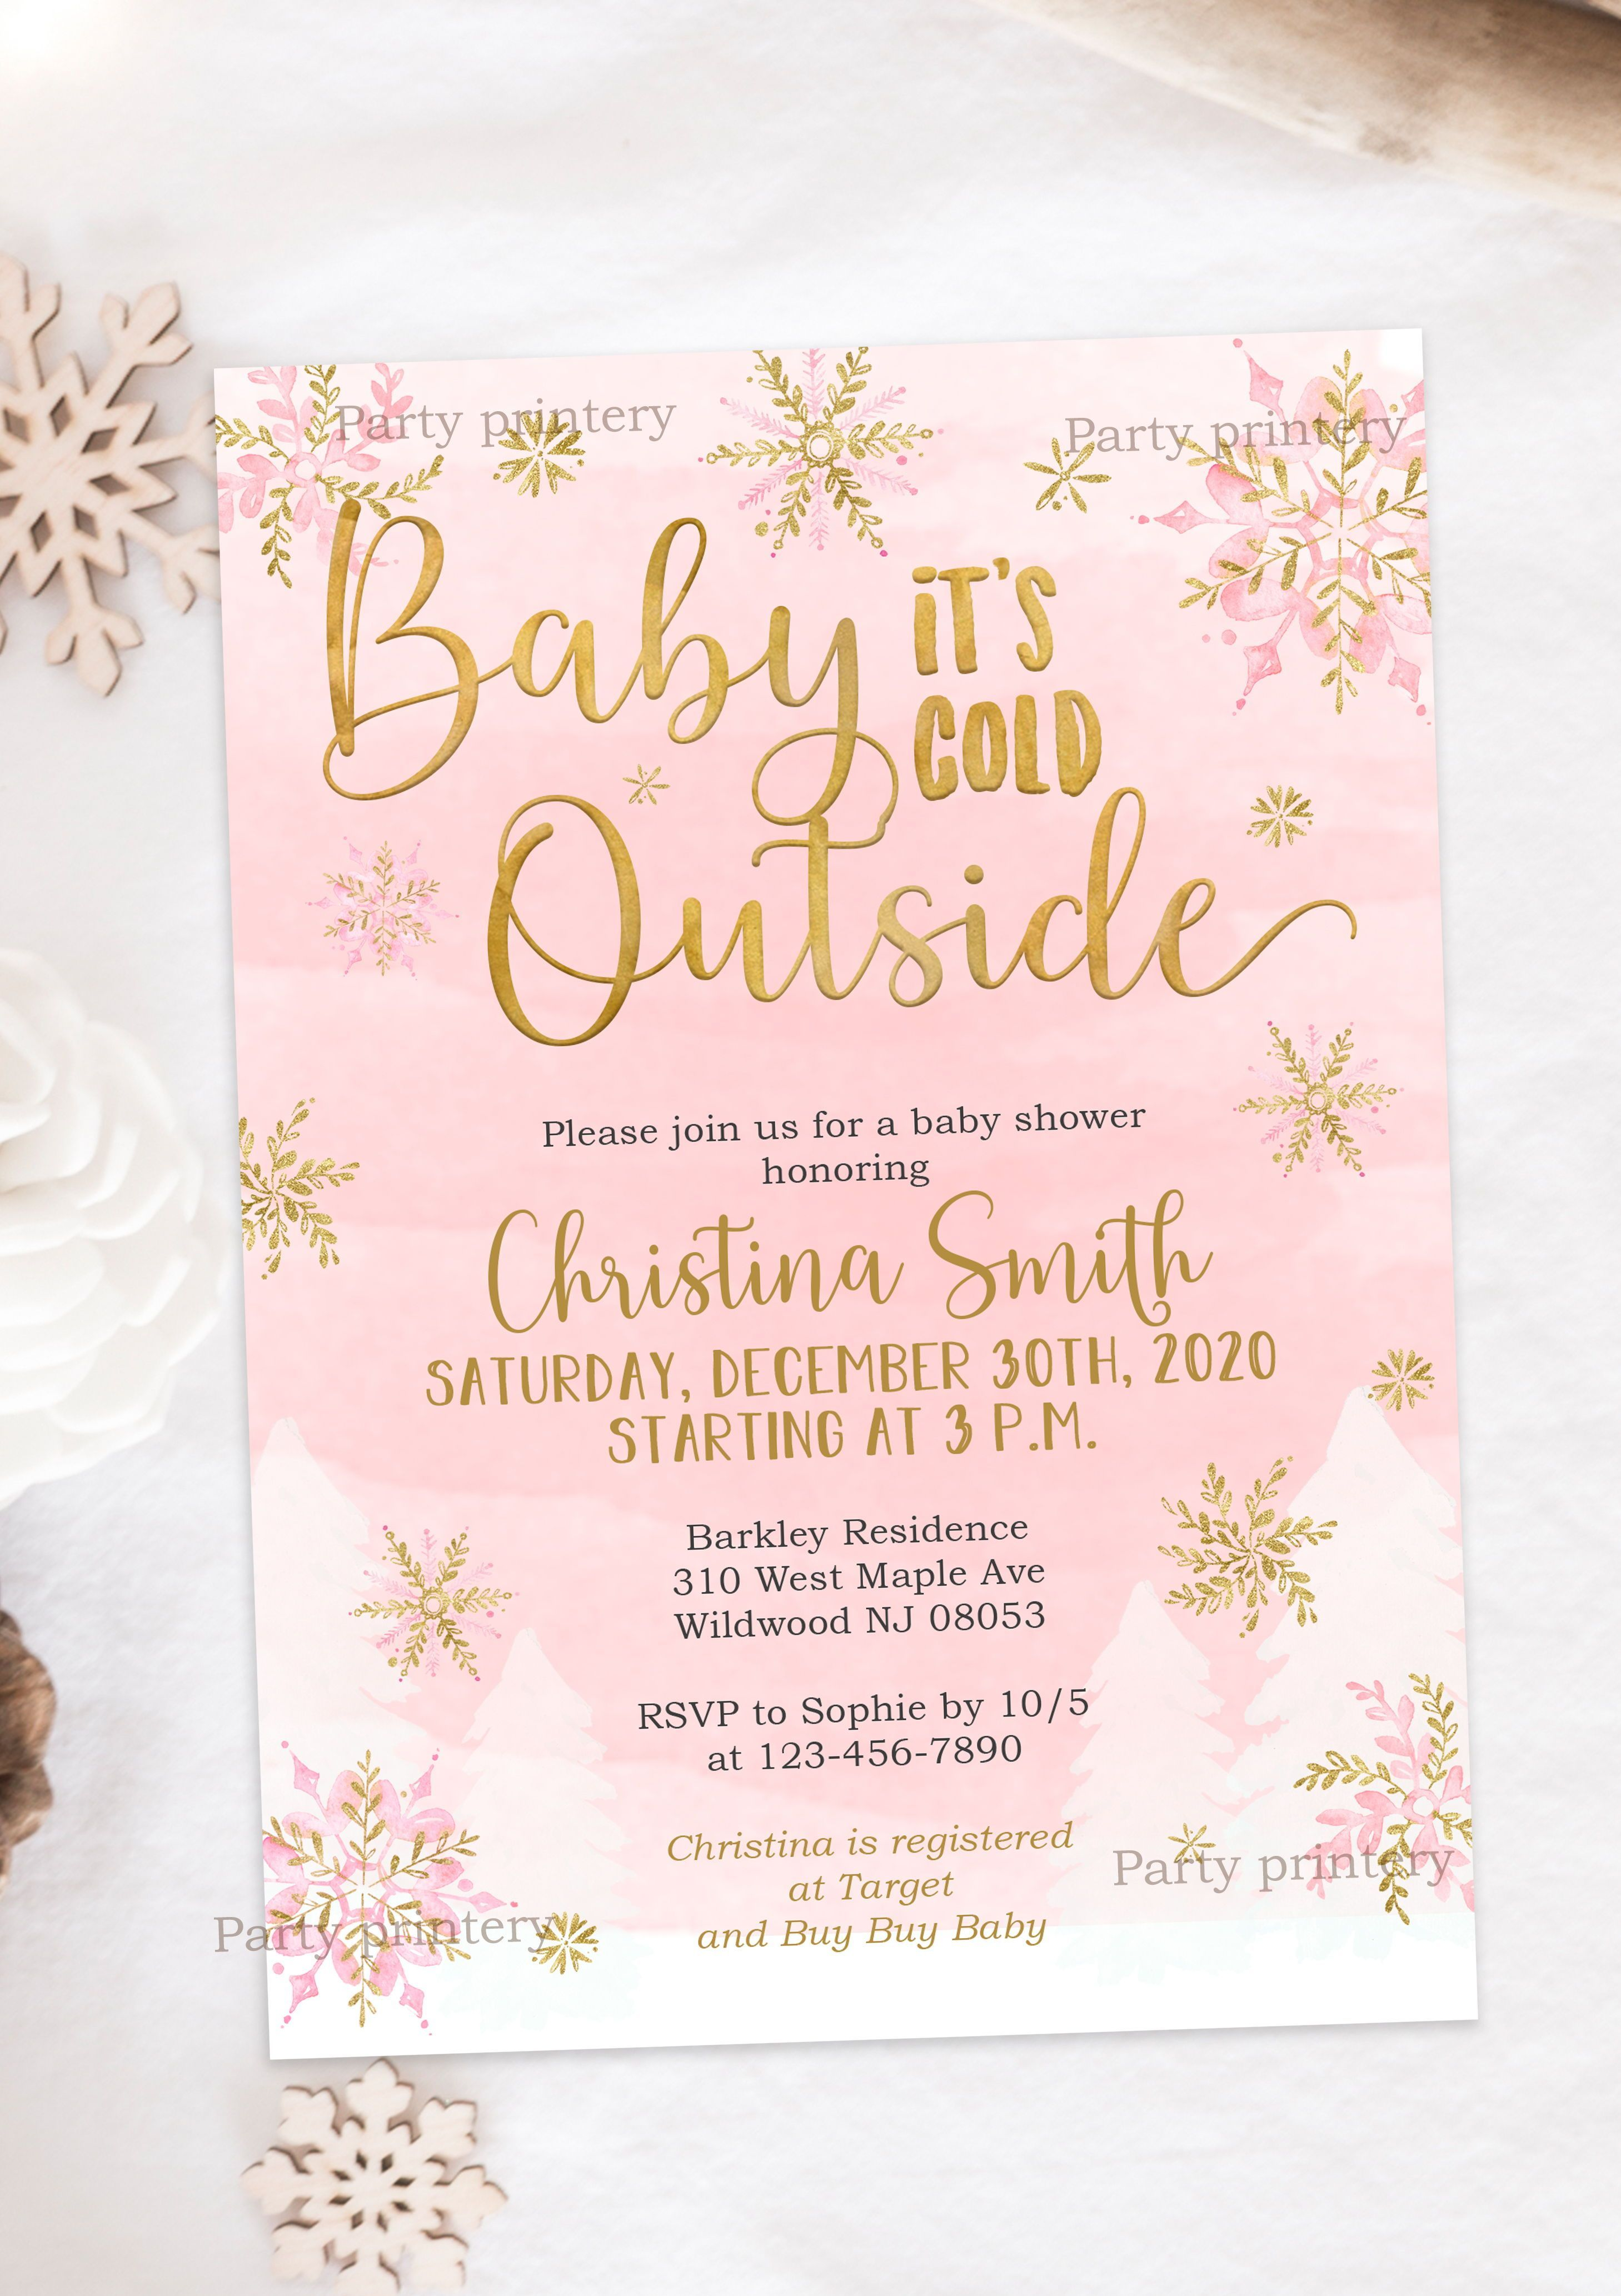 Snowflake Baby Shower Invitations For A Girl Baby Its Cold Etsy Snowflake Baby Shower Invitations Snowflake Baby Shower Baby Shower Invitations